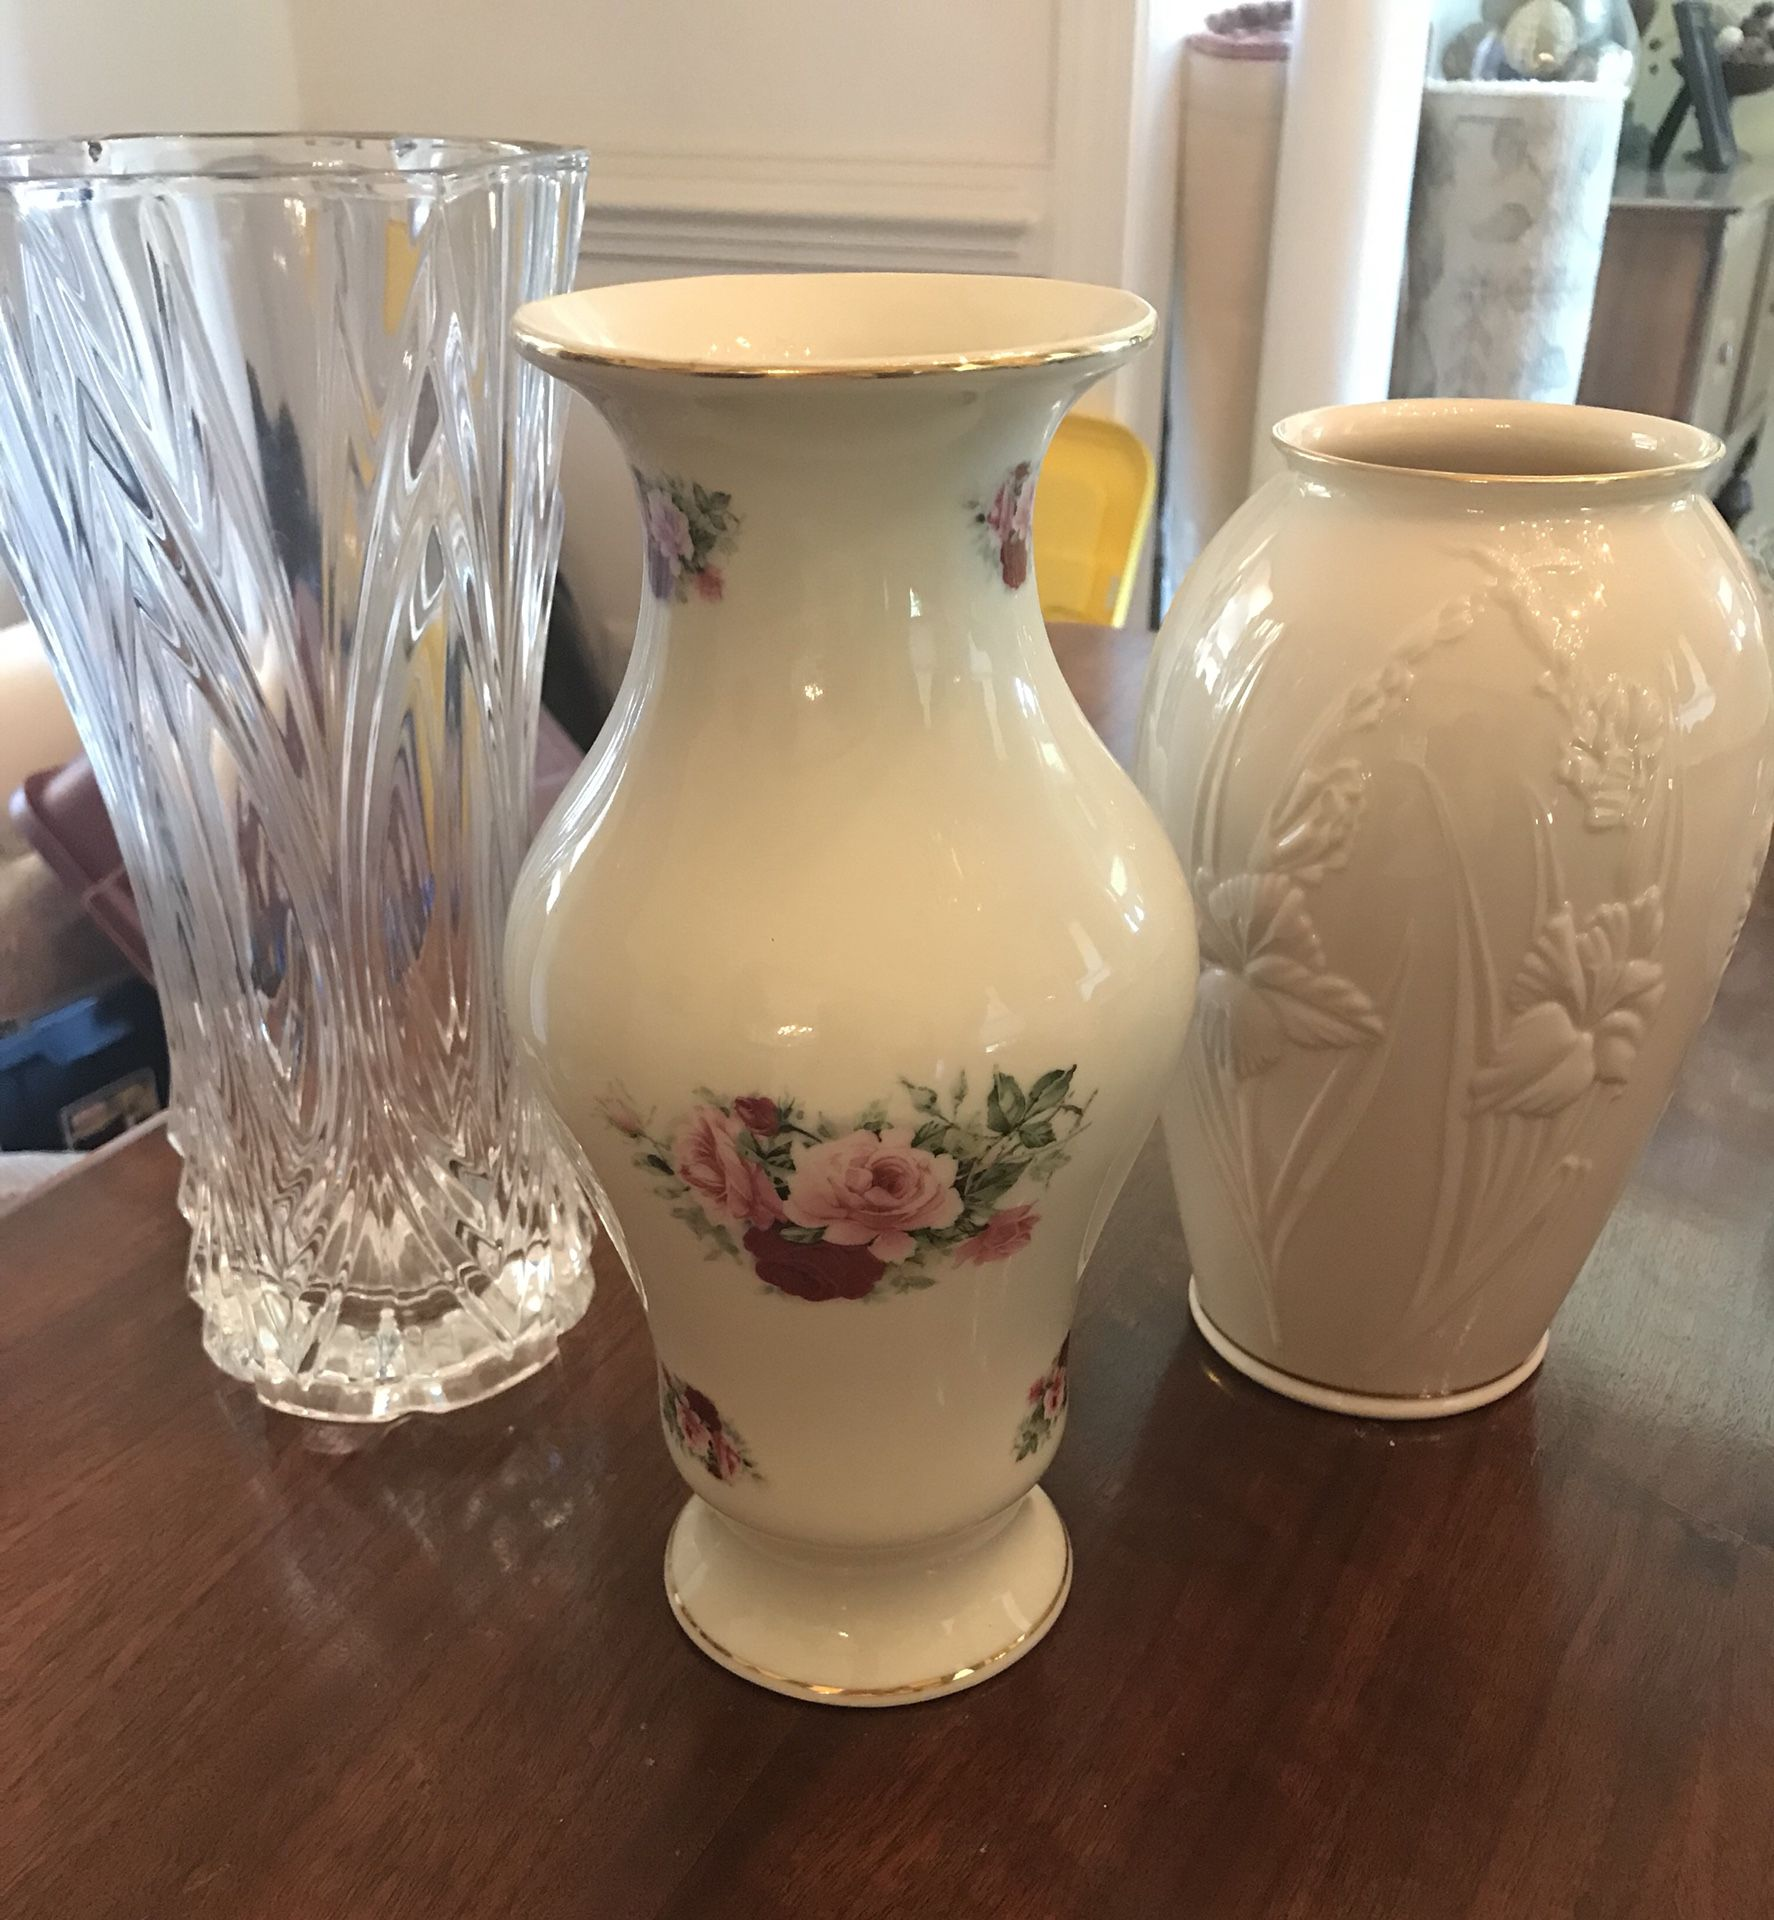 China and Crystal Vases